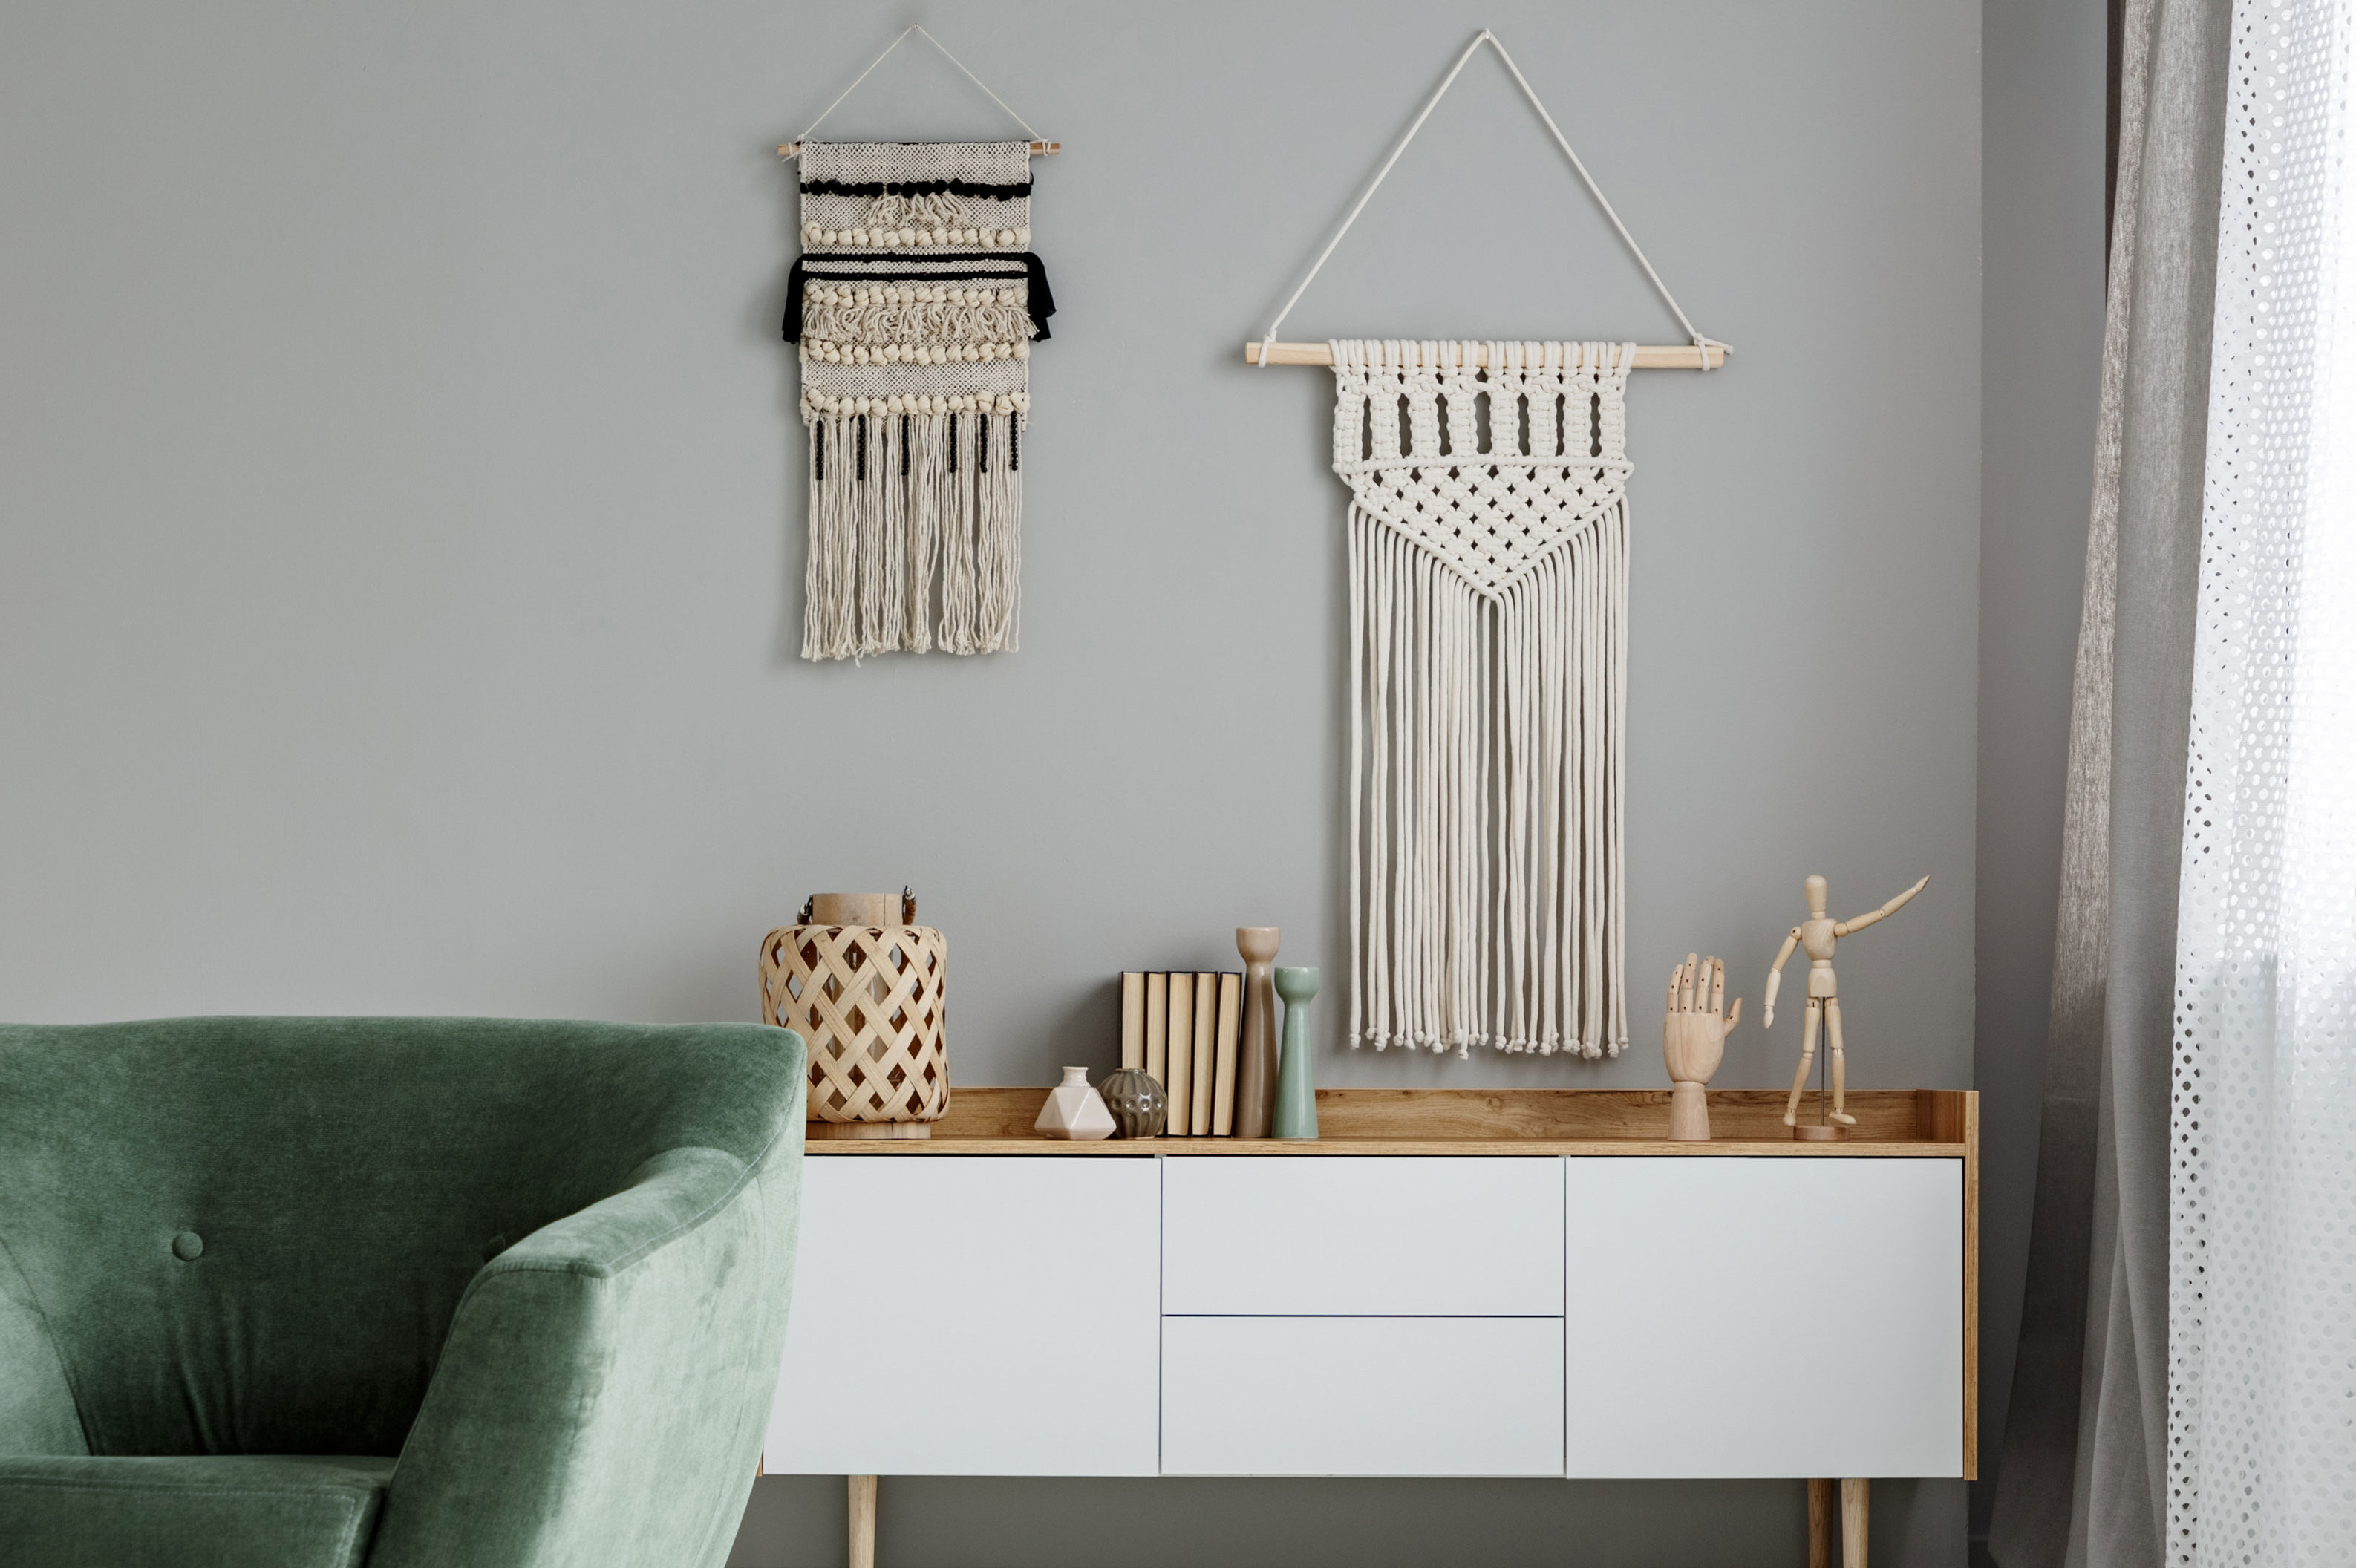 5 Home Trends We're Ready To Retire In 2019 – Southern Living Throughout Casual Country Eat Here Retro Wall Decor (View 10 of 30)